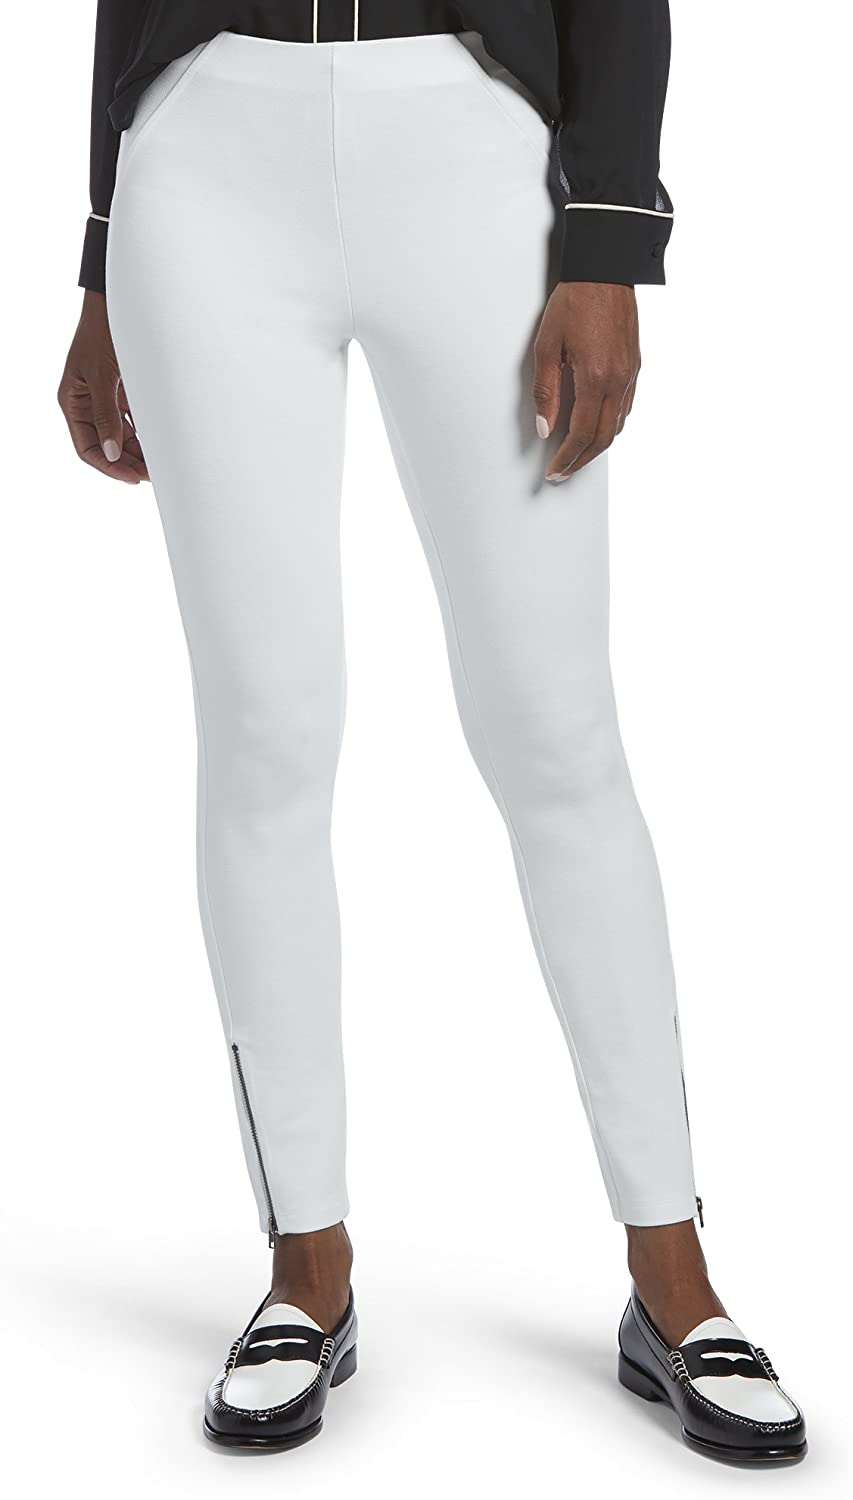 HUE Don't miss the campaign Elegant Women's Twill Ankle Zip Stretch 18749 Simply Skimmer